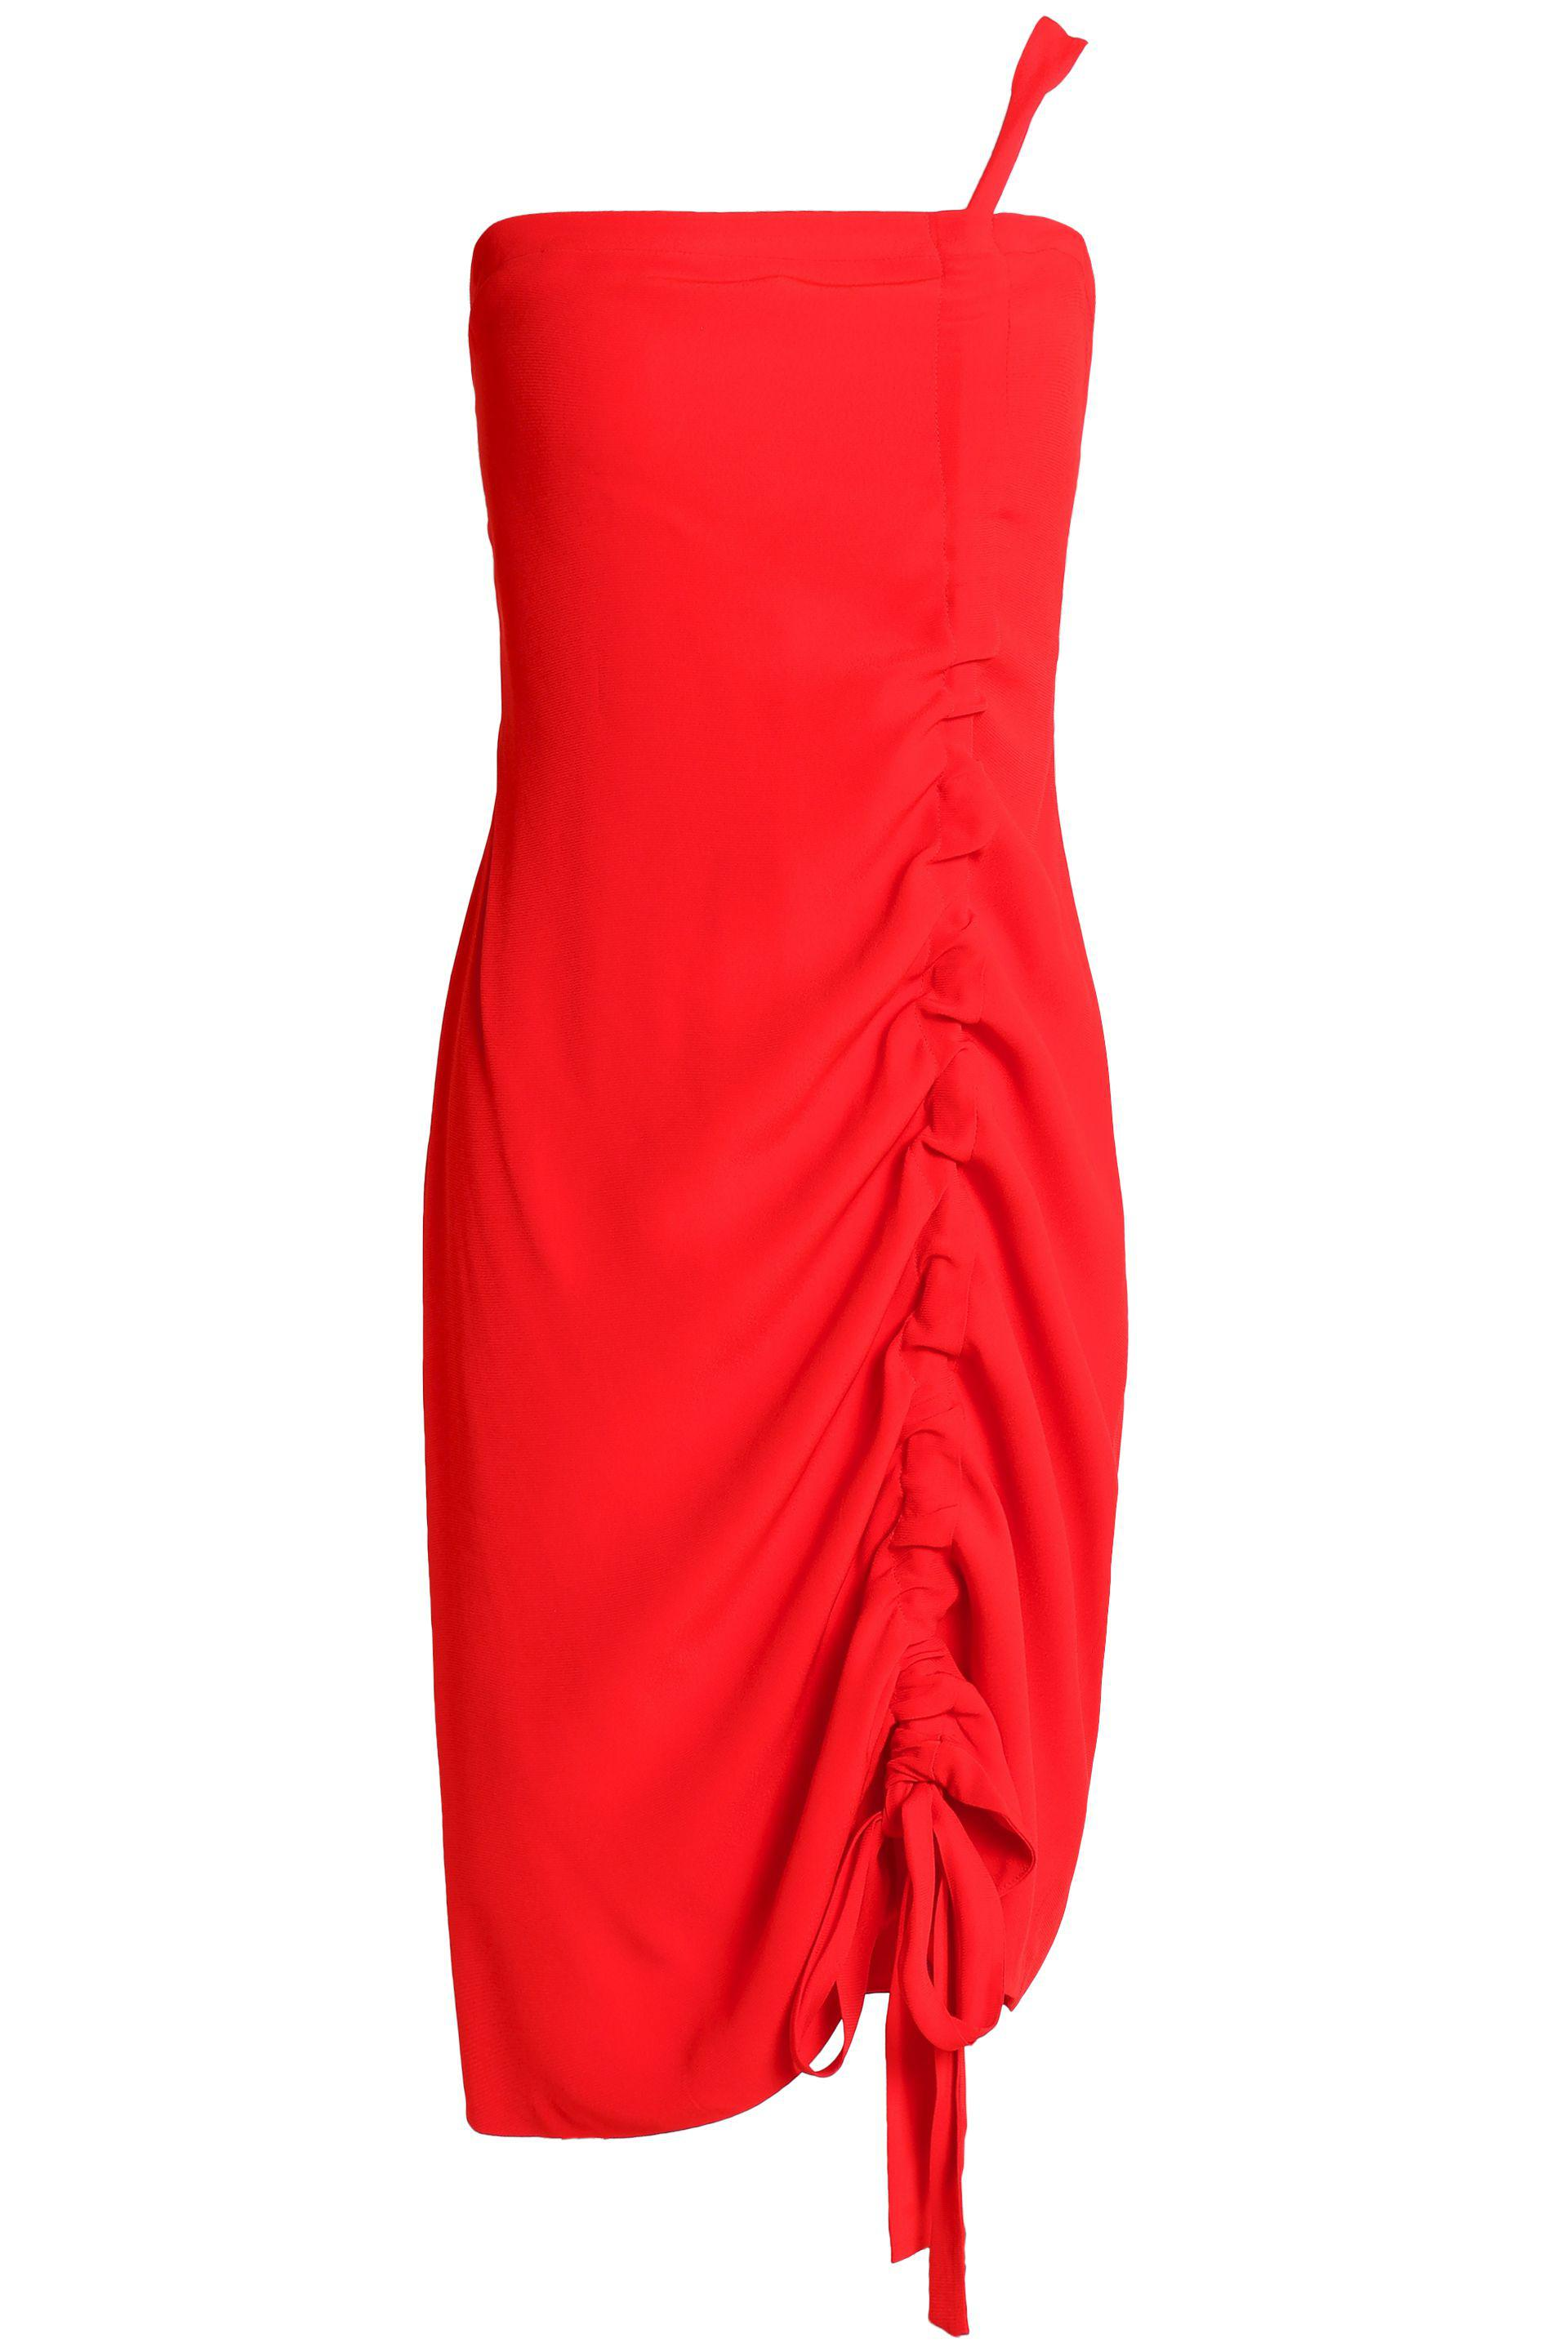 Alexis Woman Staz One-shoulder Ruched Crepe Mini Dress Red Size L Alexis Outlet Low Price Sale Good Selling Choice Cheap Price Free Shipping Get To Buy Discount Q5JS3bXs